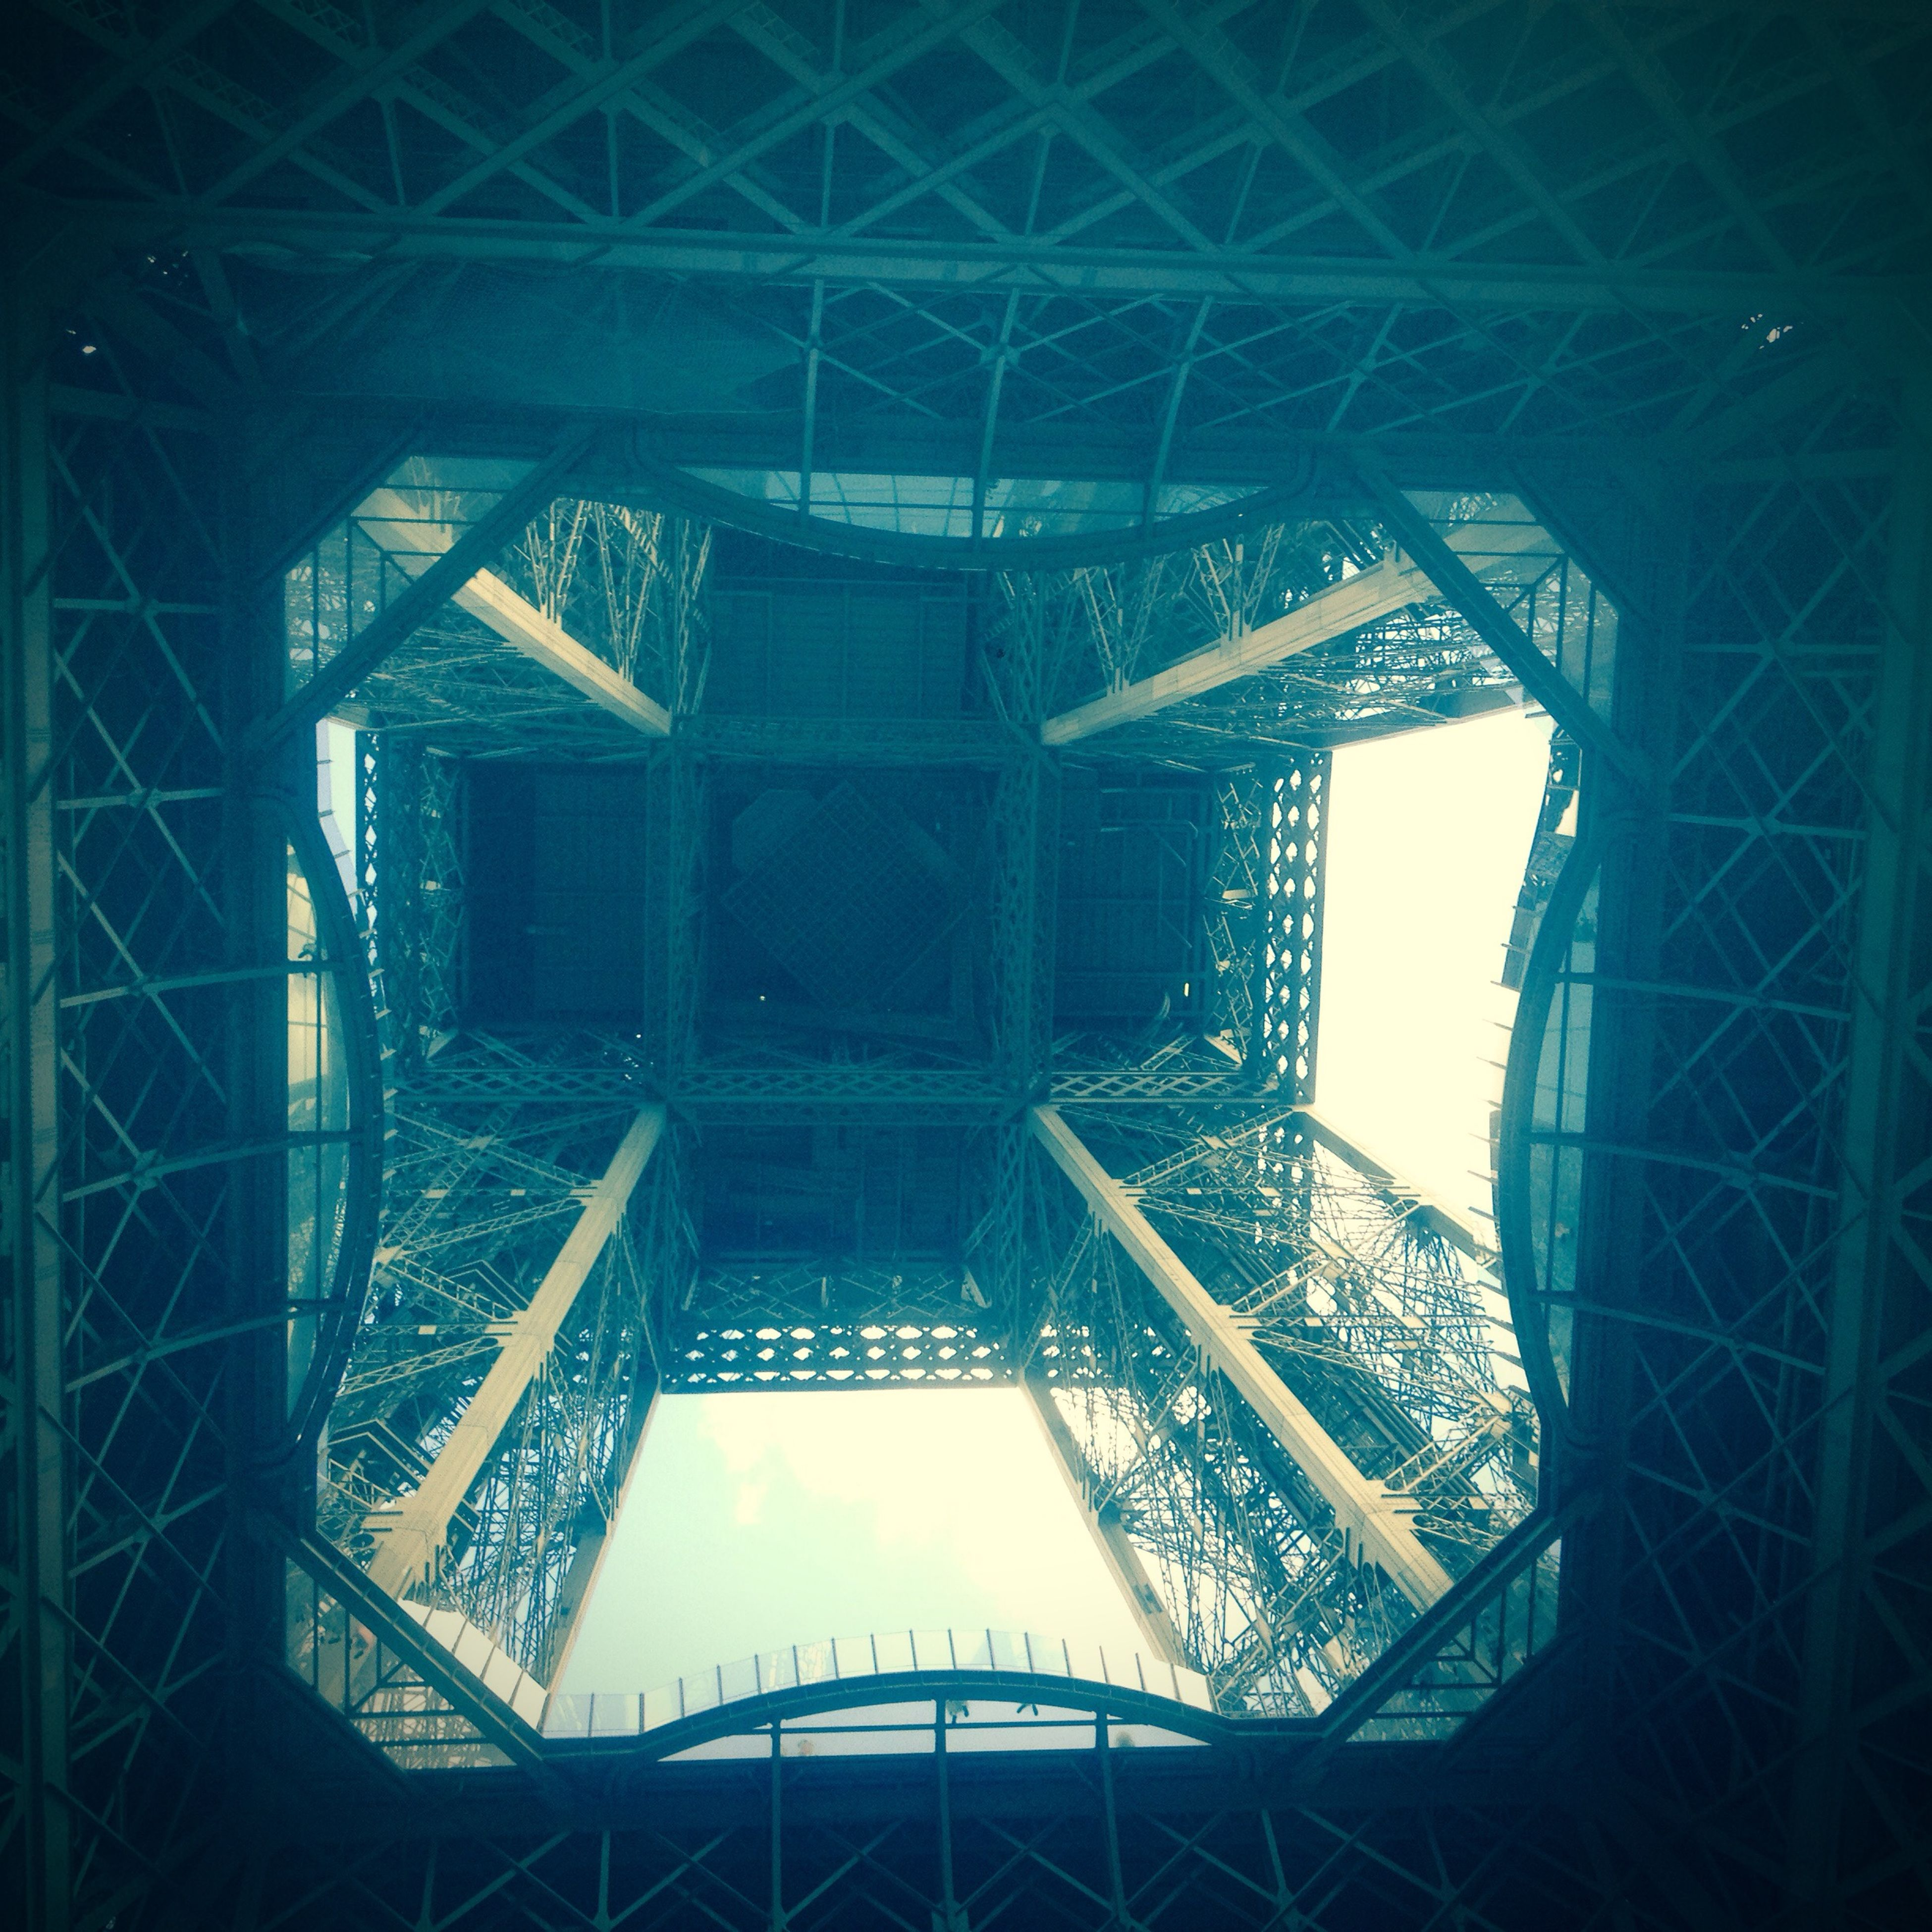 architecture, built structure, low angle view, indoors, building exterior, architectural feature, famous place, modern, tower, city, glass - material, metal, capital cities, international landmark, travel destinations, day, culture, no people, eiffel tower, building